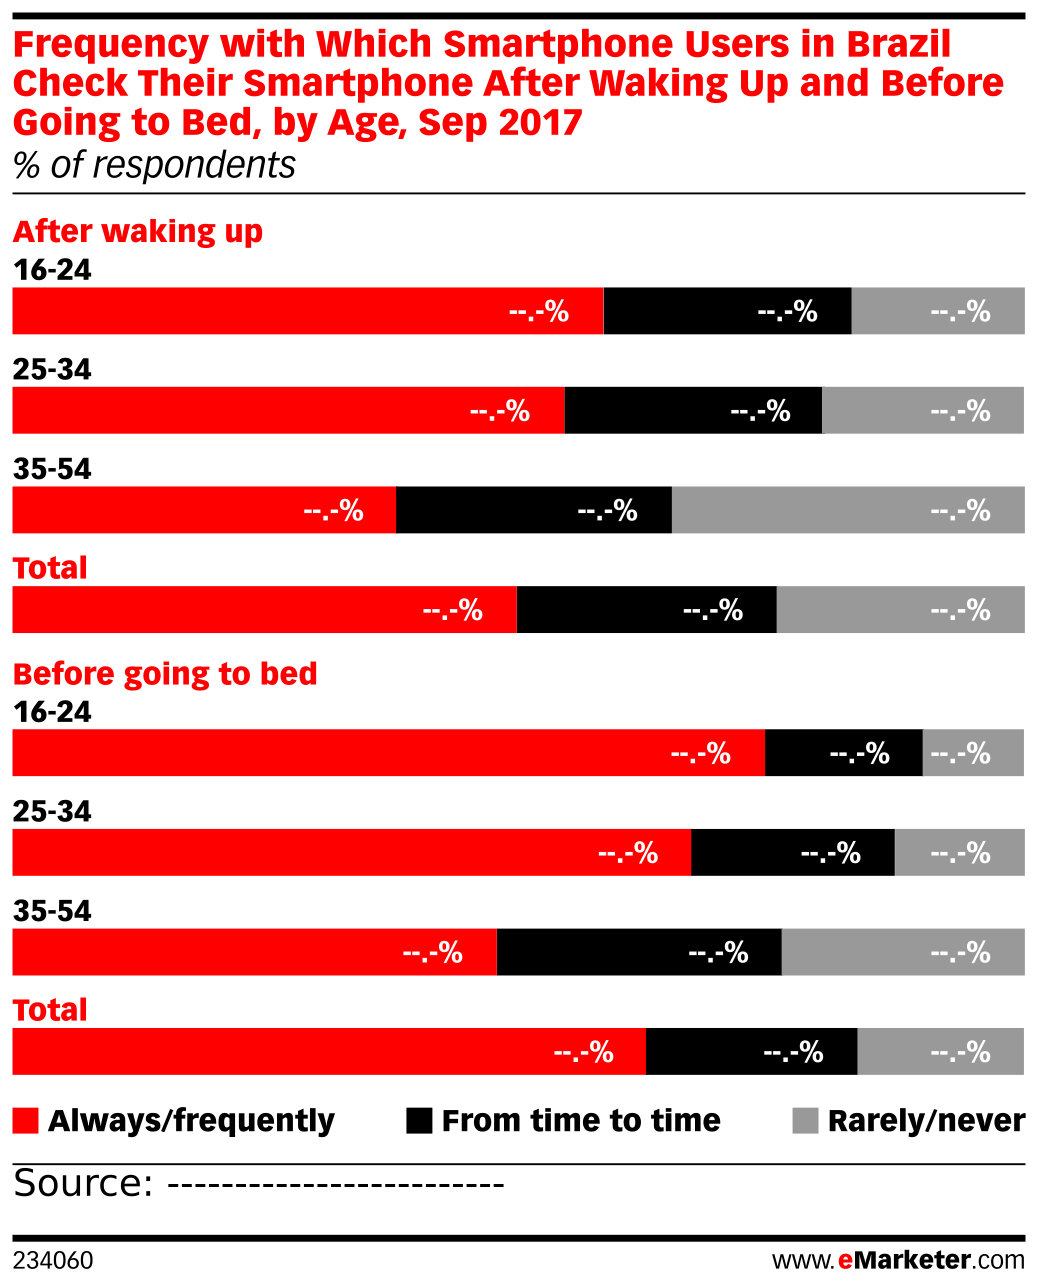 Frequency with Which Smartphone Users in Brazil Check Their Smartphone After Waking Up and Before Going to Bed, by Age, Sep 2017 (% of respondents)